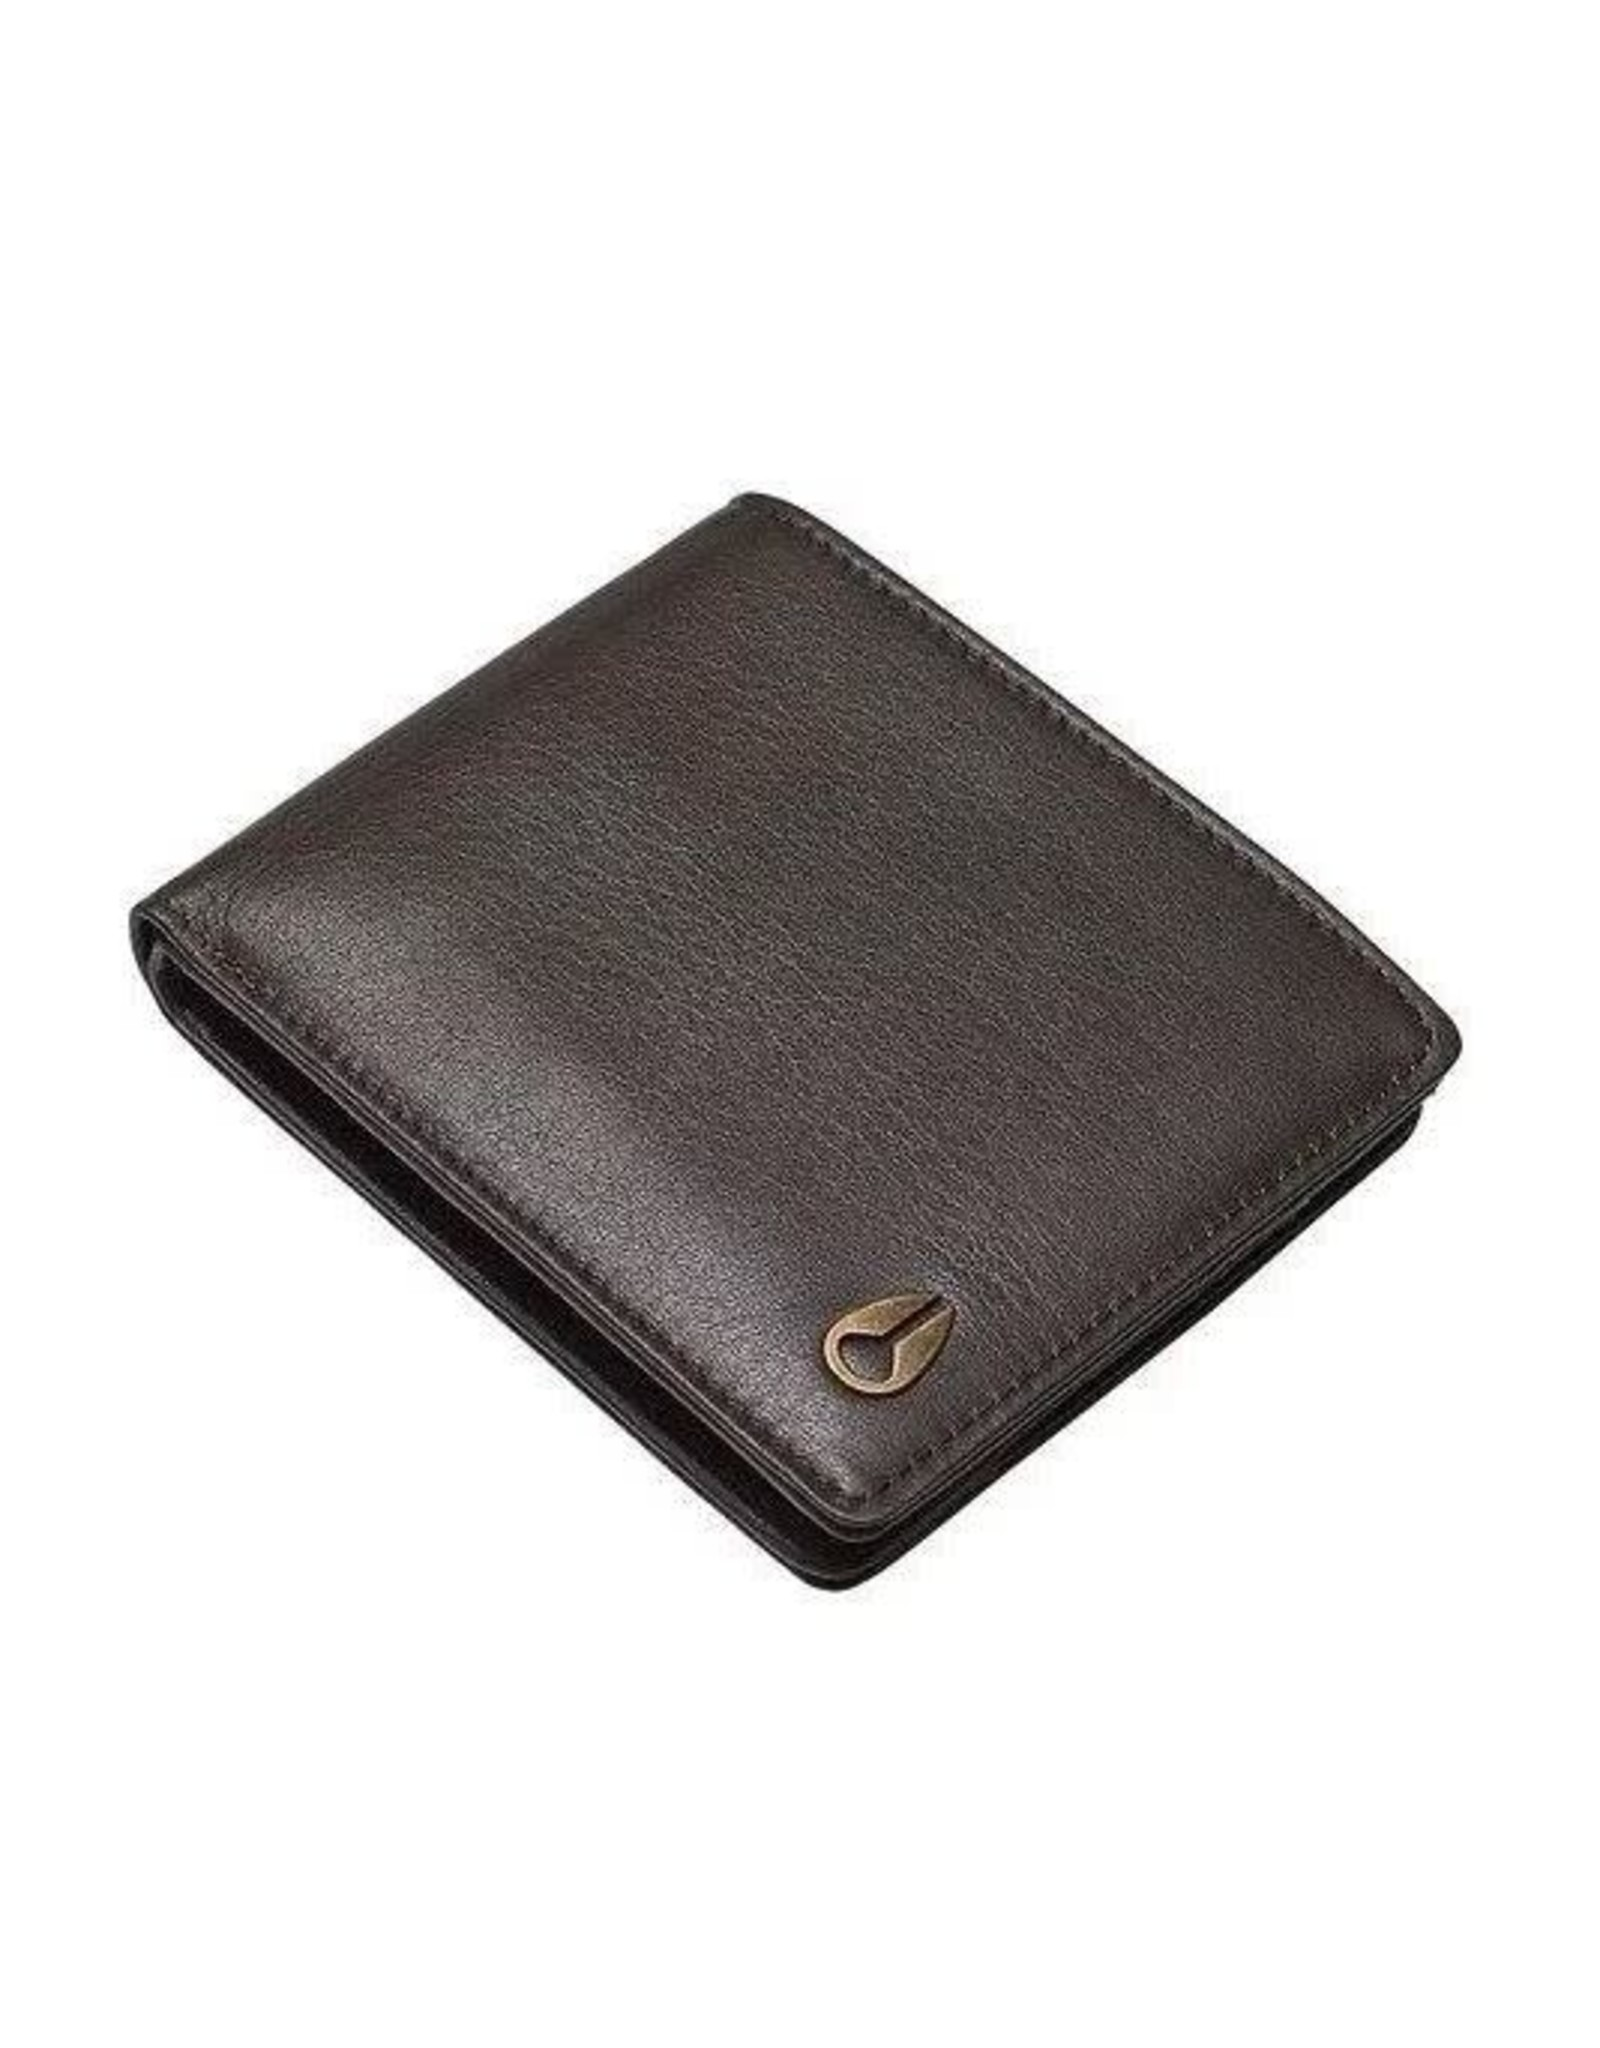 nixon Nixon - Portefeuille homme pass leather brown